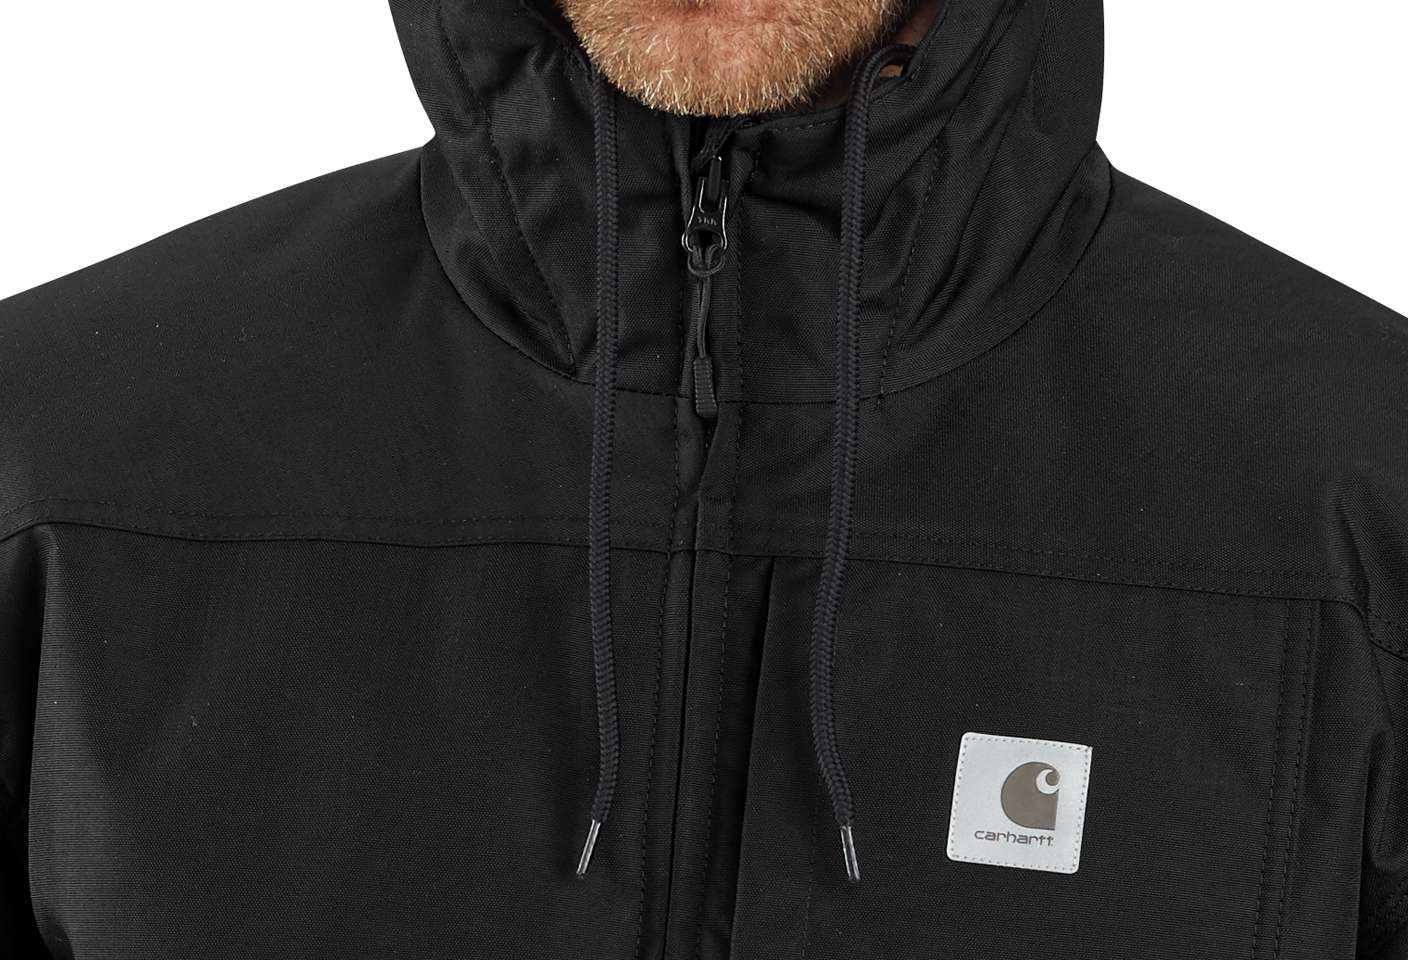 Adjustable 3M™ Thinsulate™ hood keeps out the cold